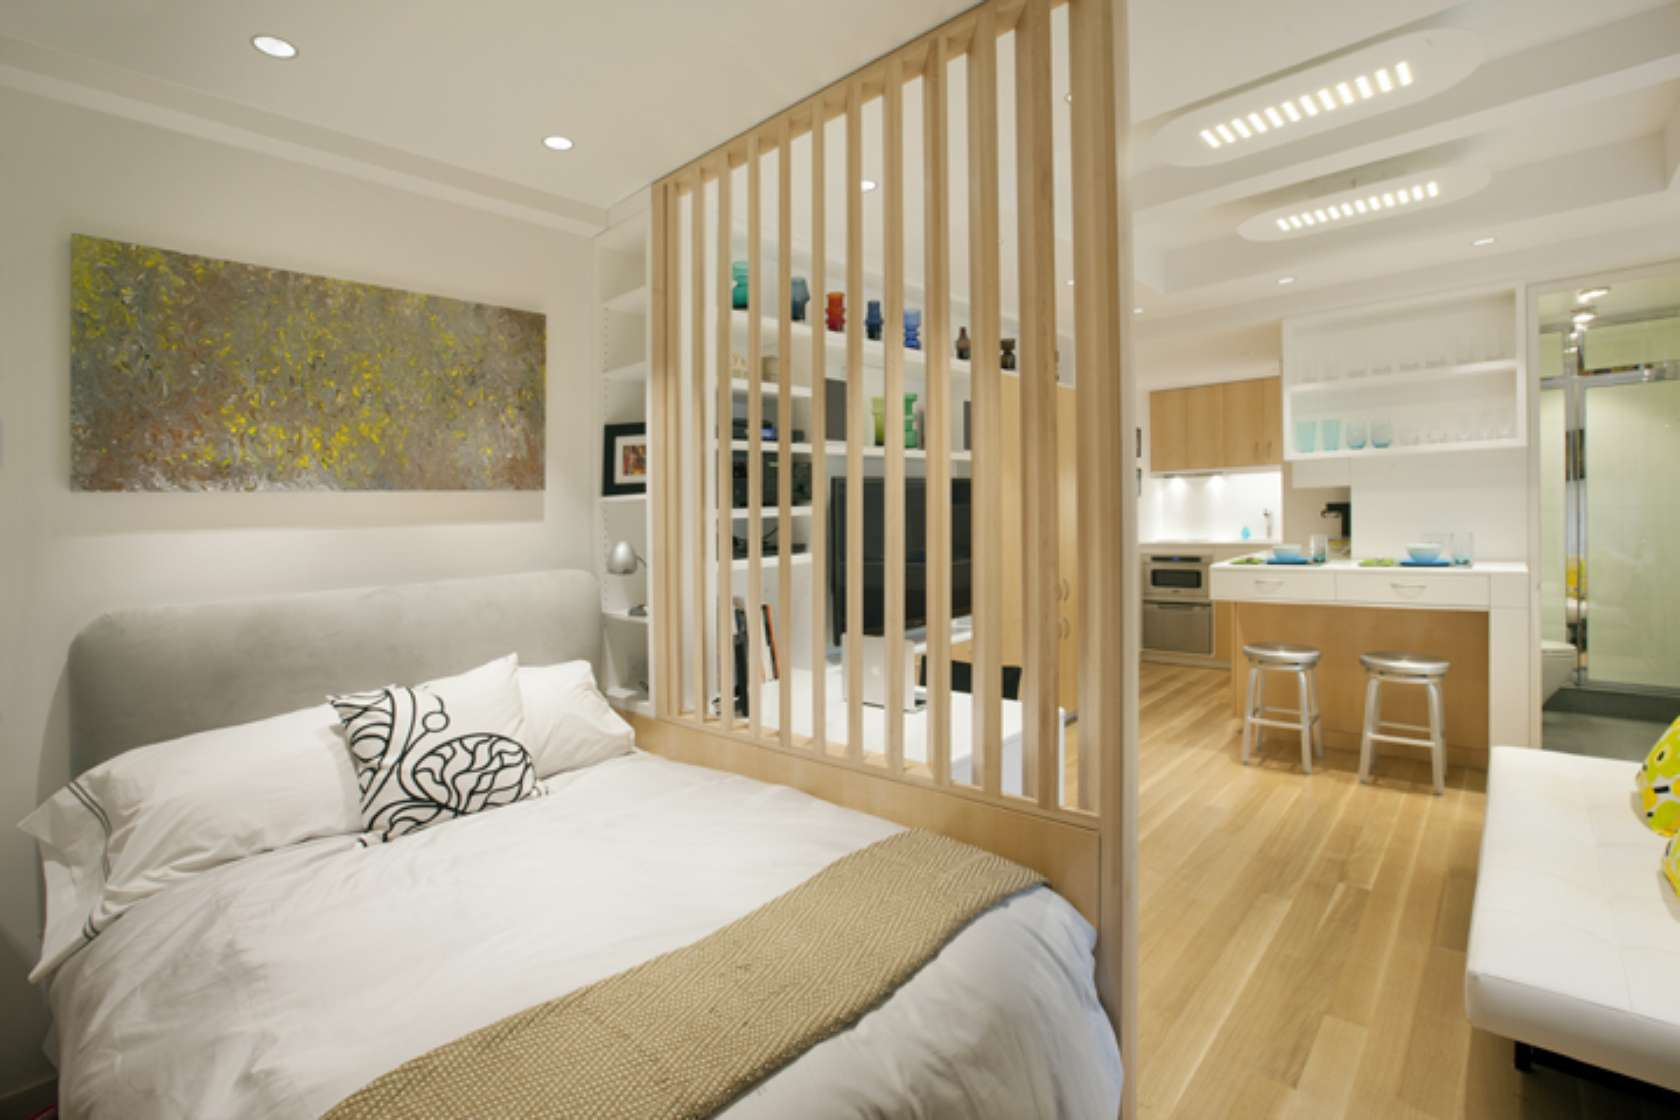 Bedroom Partitions Interior Partitions Room Zoning Design Ideas